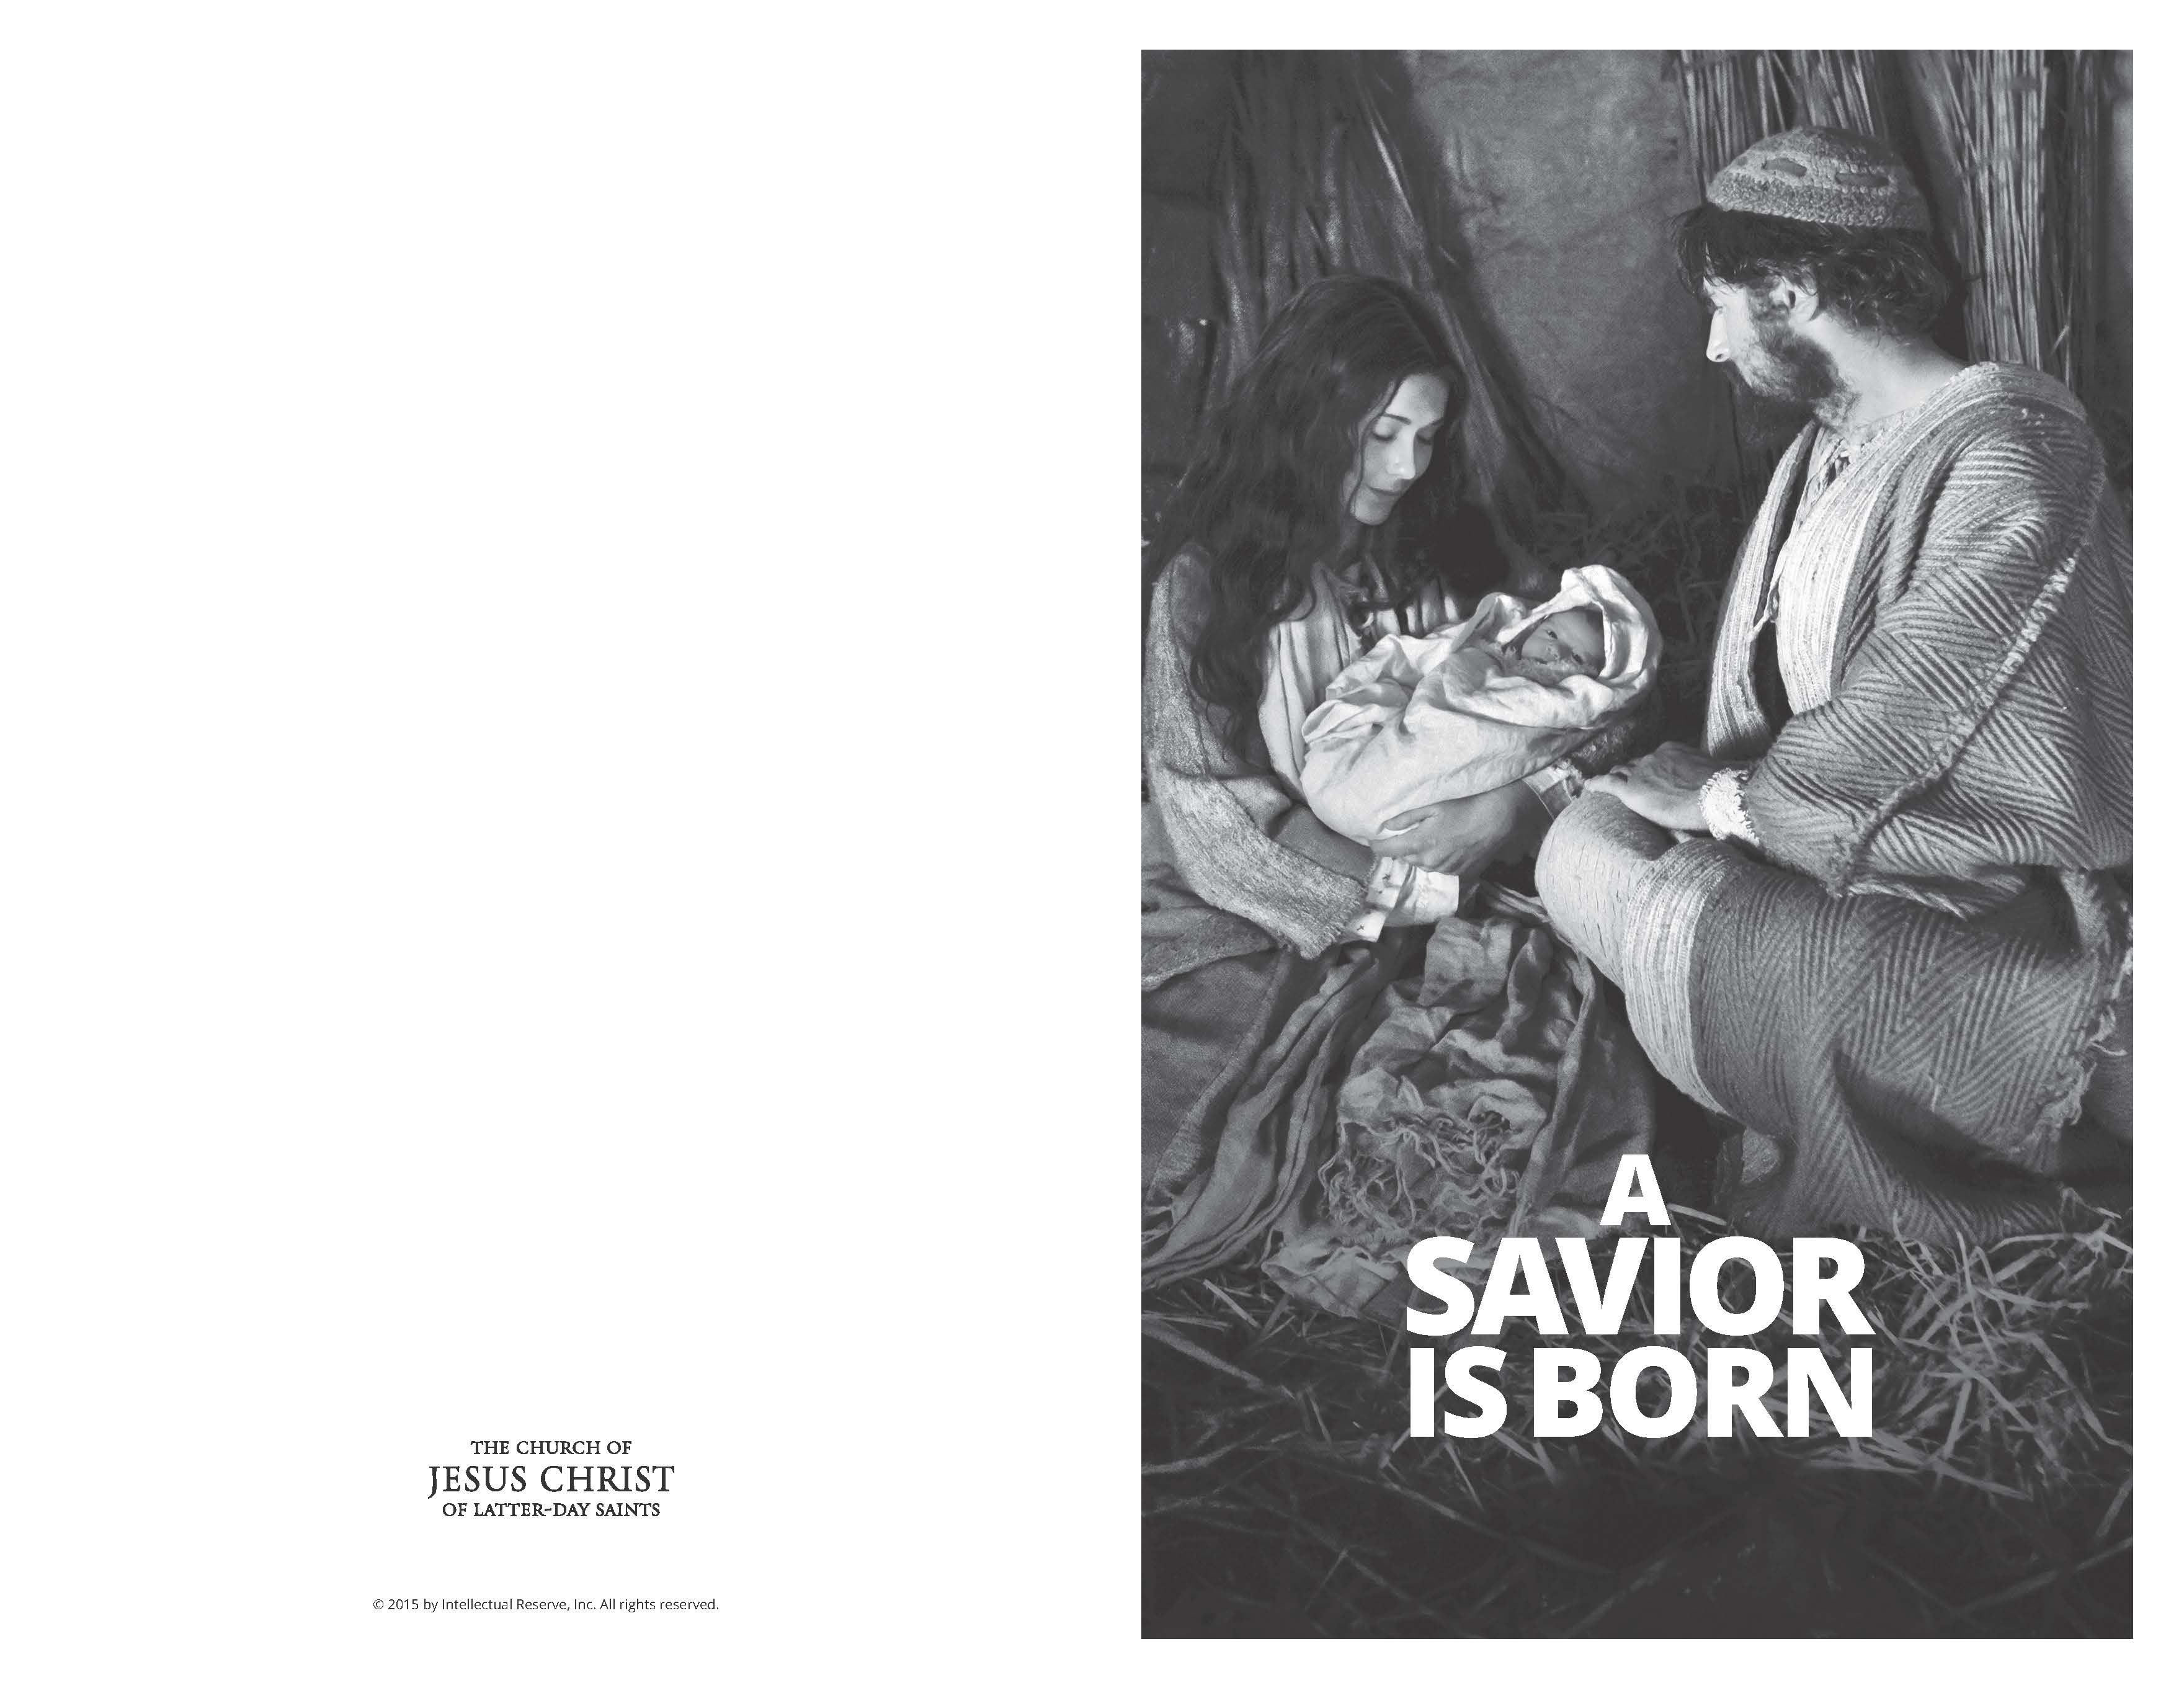 Asaviorisborn Lds Christmas Program Bw Lds365 Resources From The